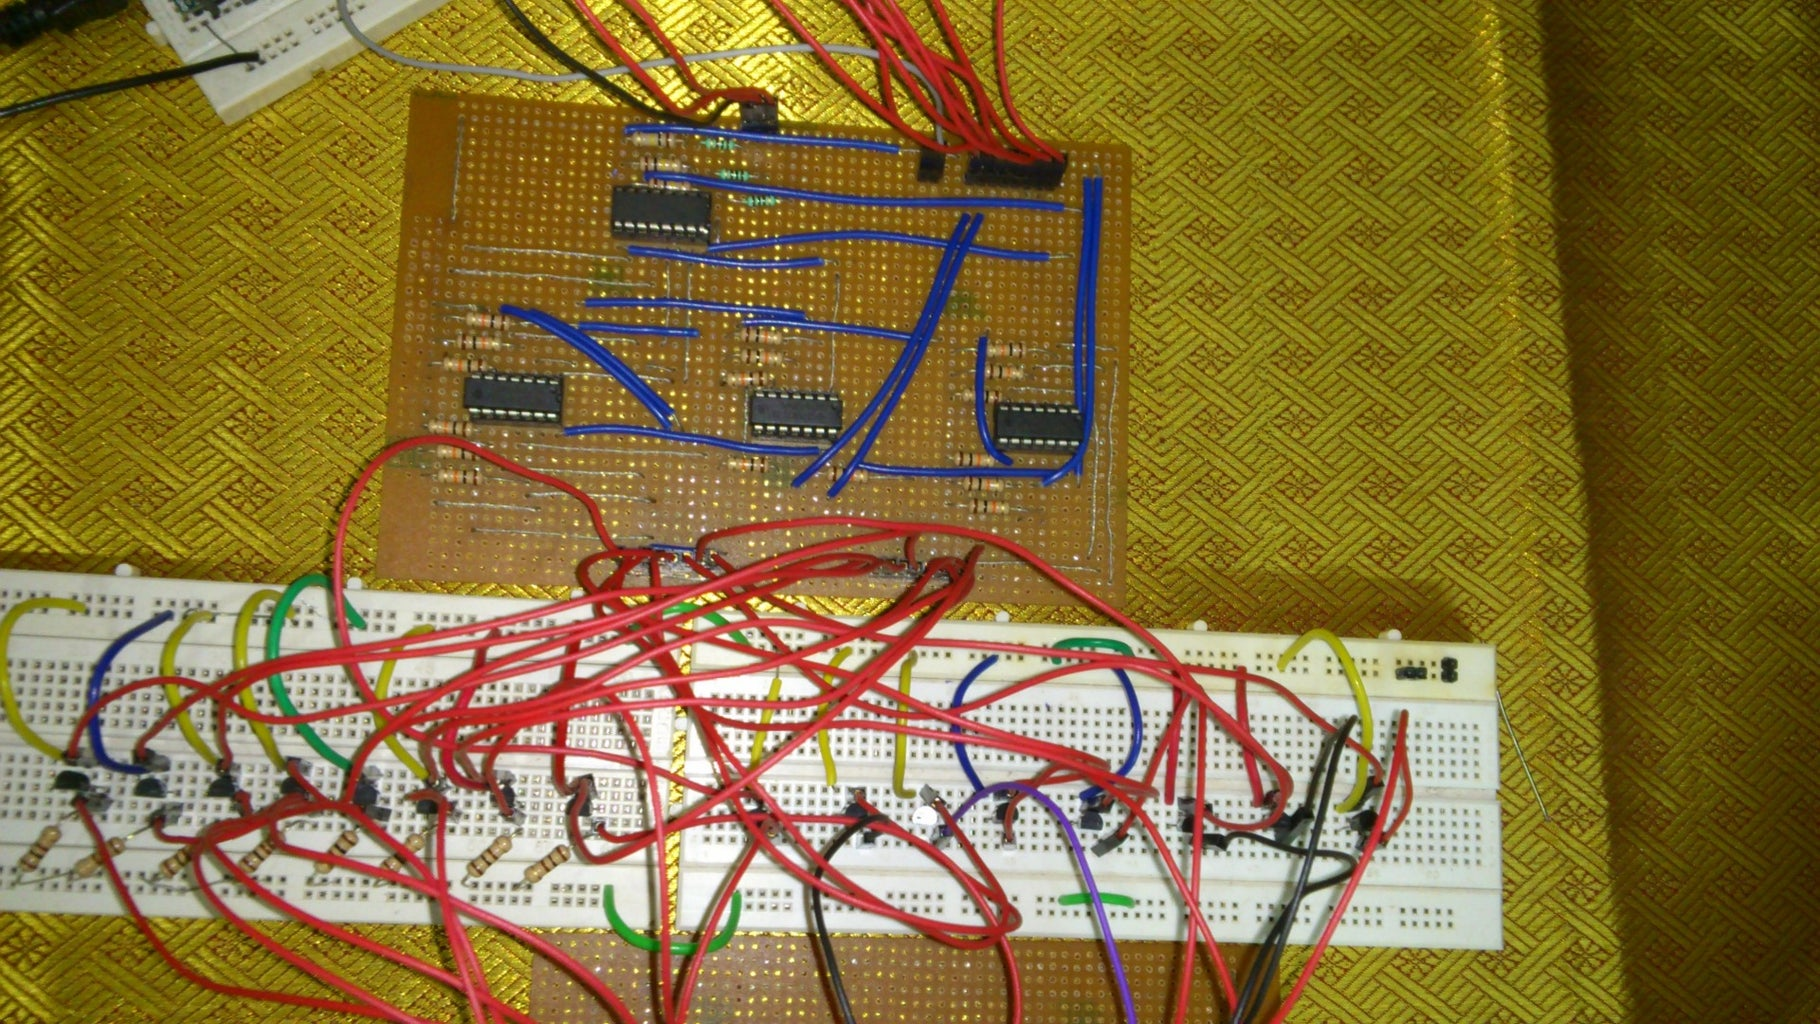 The NOT Gate and the MOSFET Driver Circuit